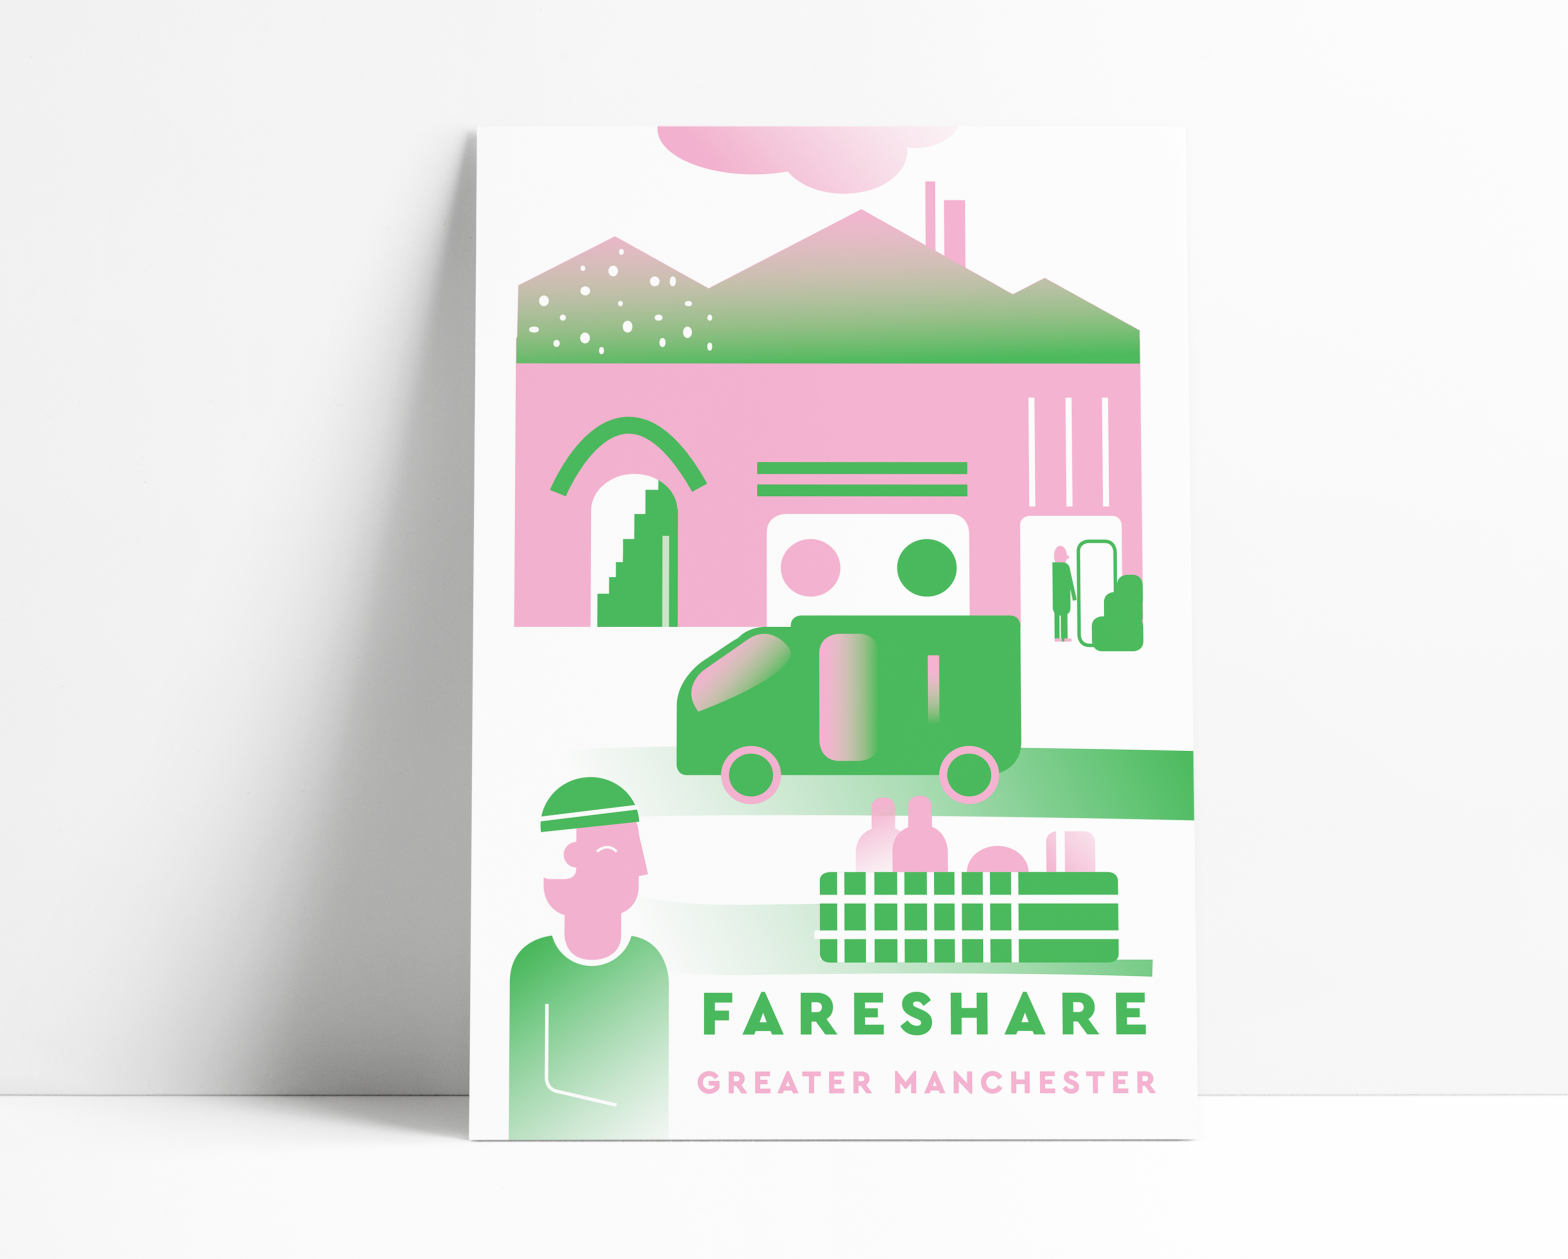 fareshare-copy.png